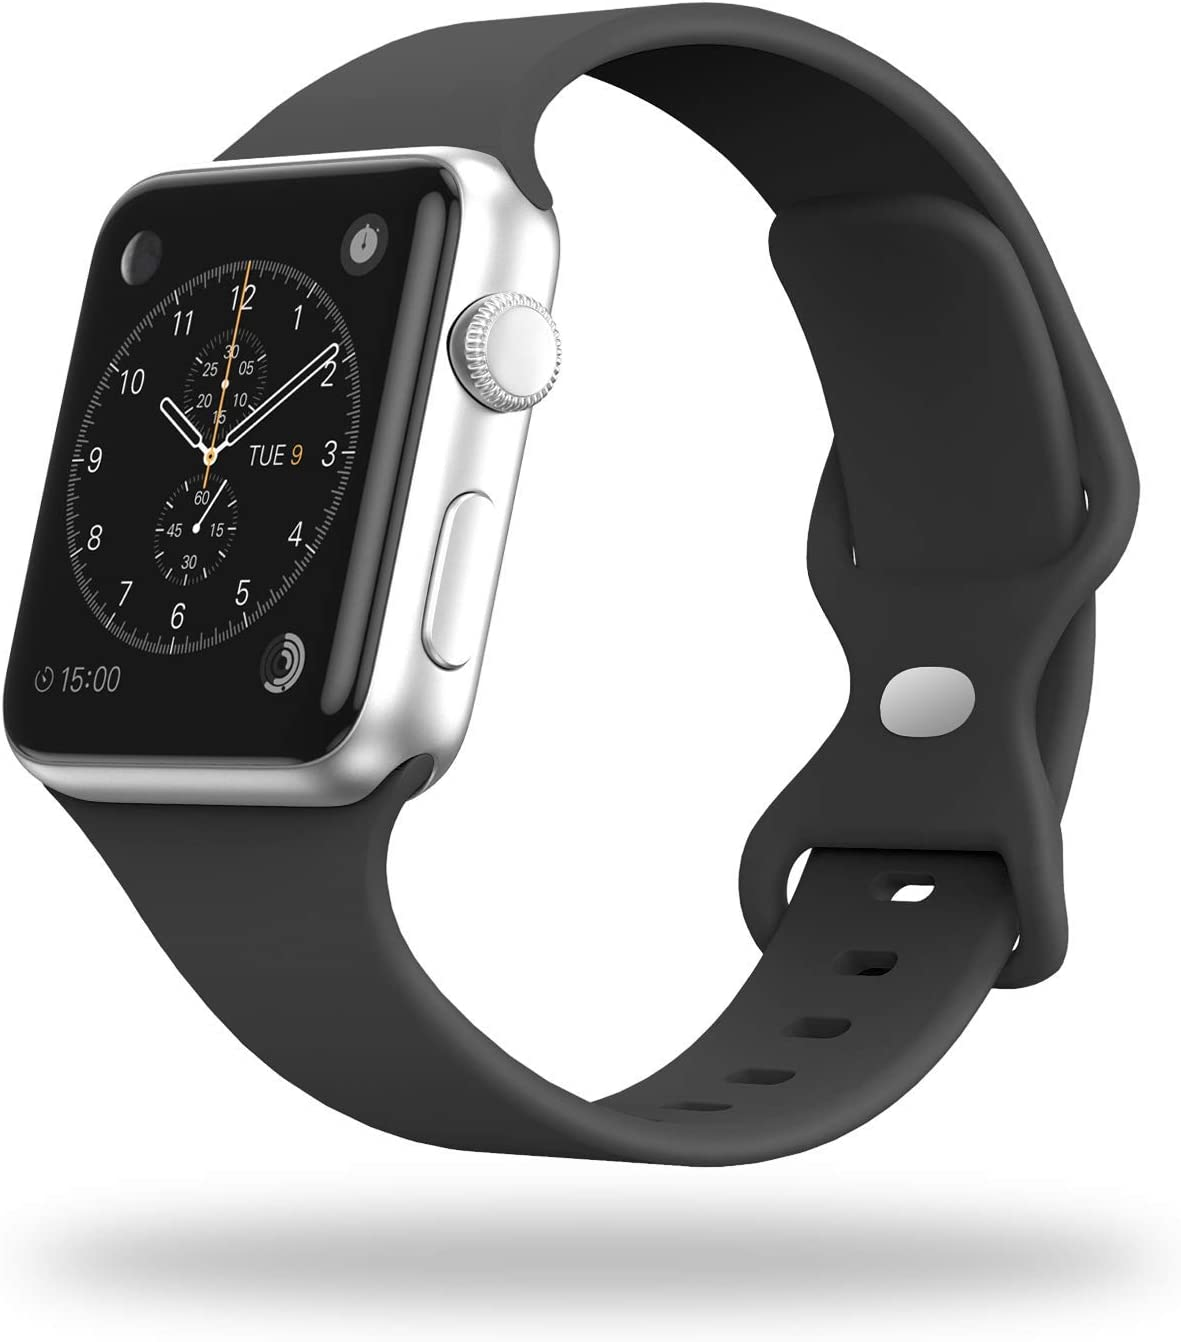 STG Smart Watch Band Compatible with Apple Watch Band 38mm 40mm 42mm 44mm, Soft Silicone Replacement Sport Strap Compatible for iWatch SE Series 6/5/4/3/2/1 (38/40mm, Black)